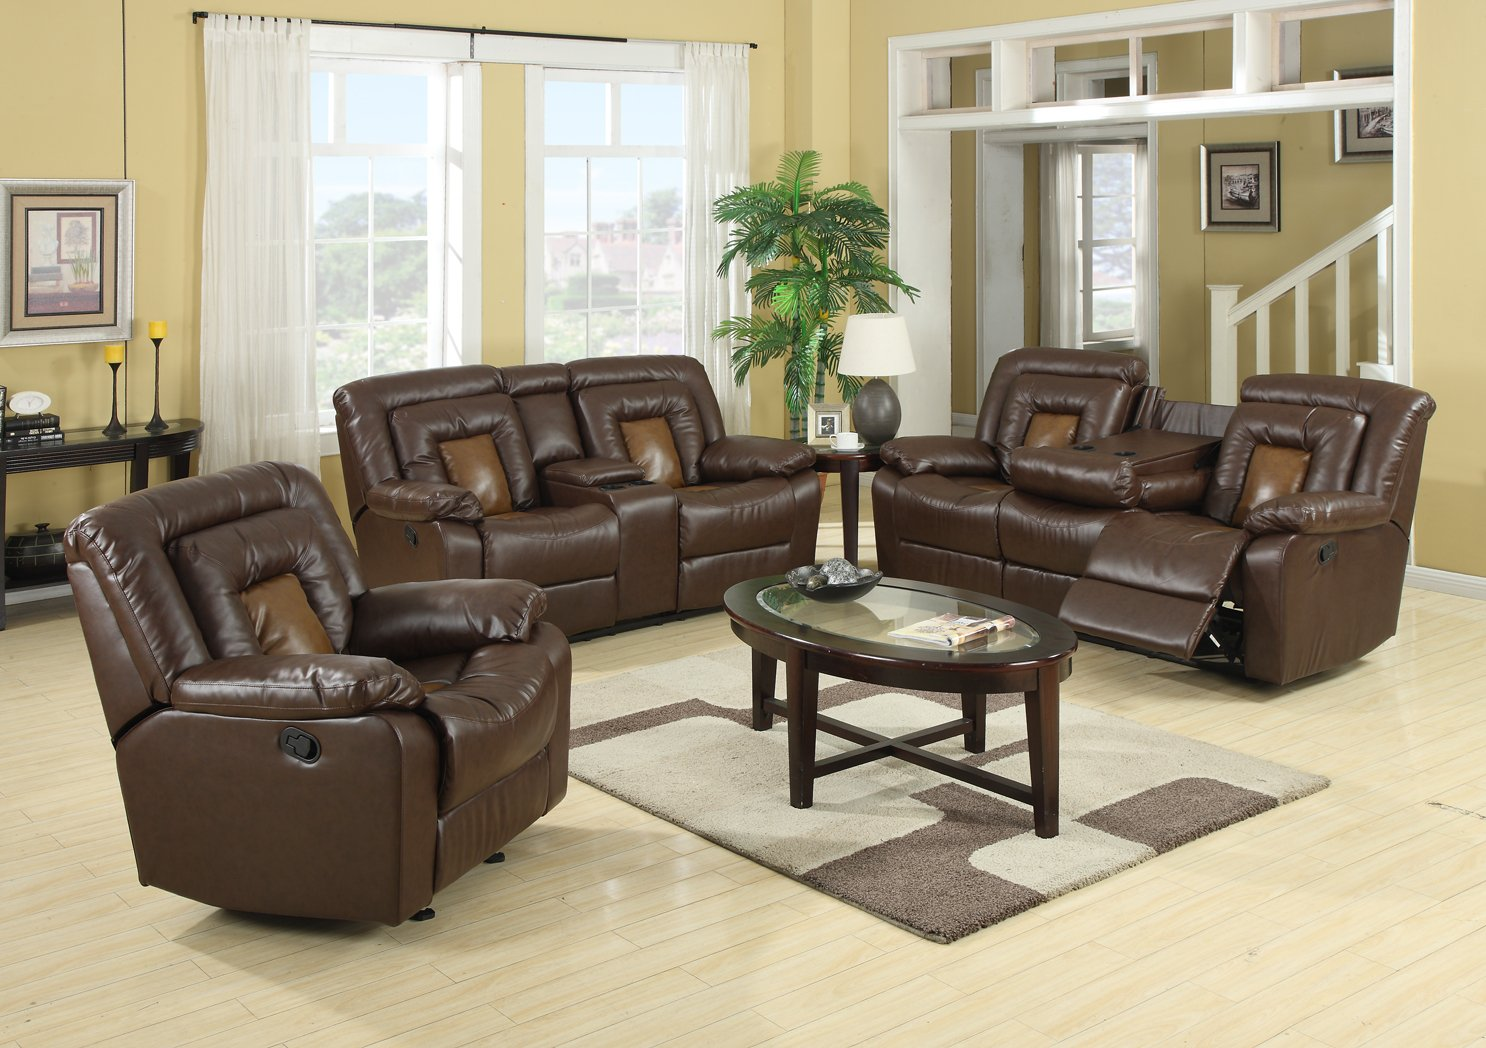 Exceptionnel Amazon.com: GTU Furniture Cobra Pu Leather Reclining Sofa Loveseat Recliner  Set, Luxurious Living Room Furniture (Sofa U0026 Loveseat, BROWN): Kitchen U0026  Dining